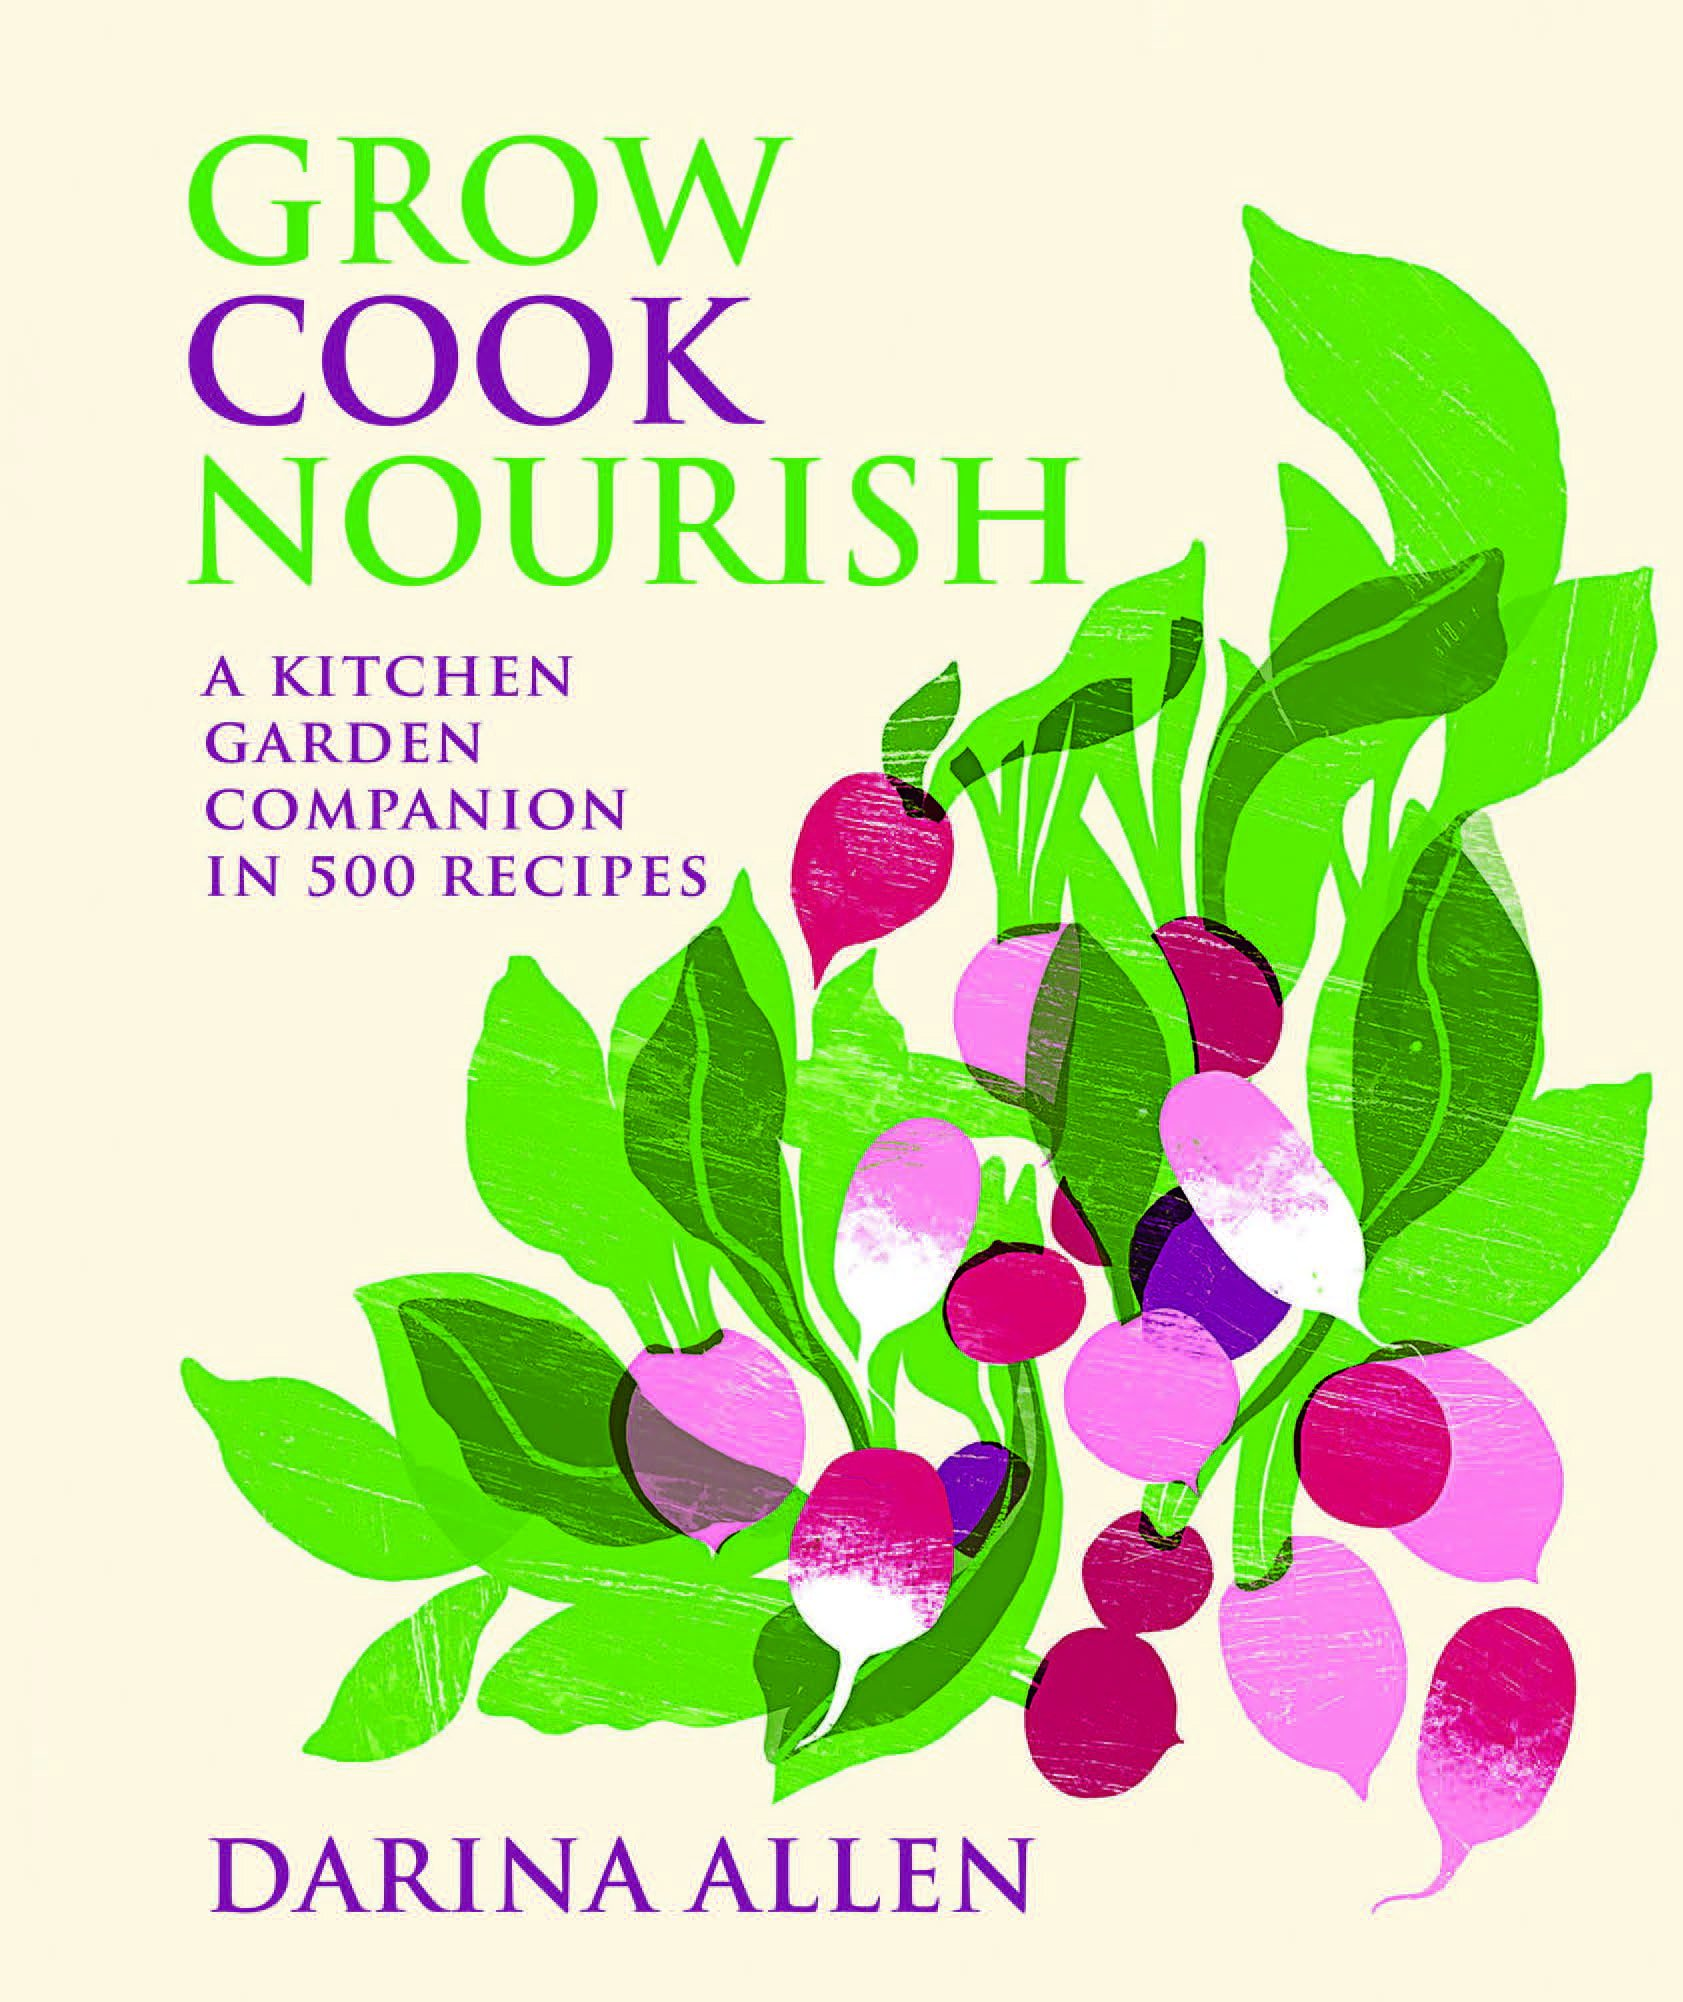 Grow Cook Nourish: A Kitchen Garden Companion in 500 Recipes